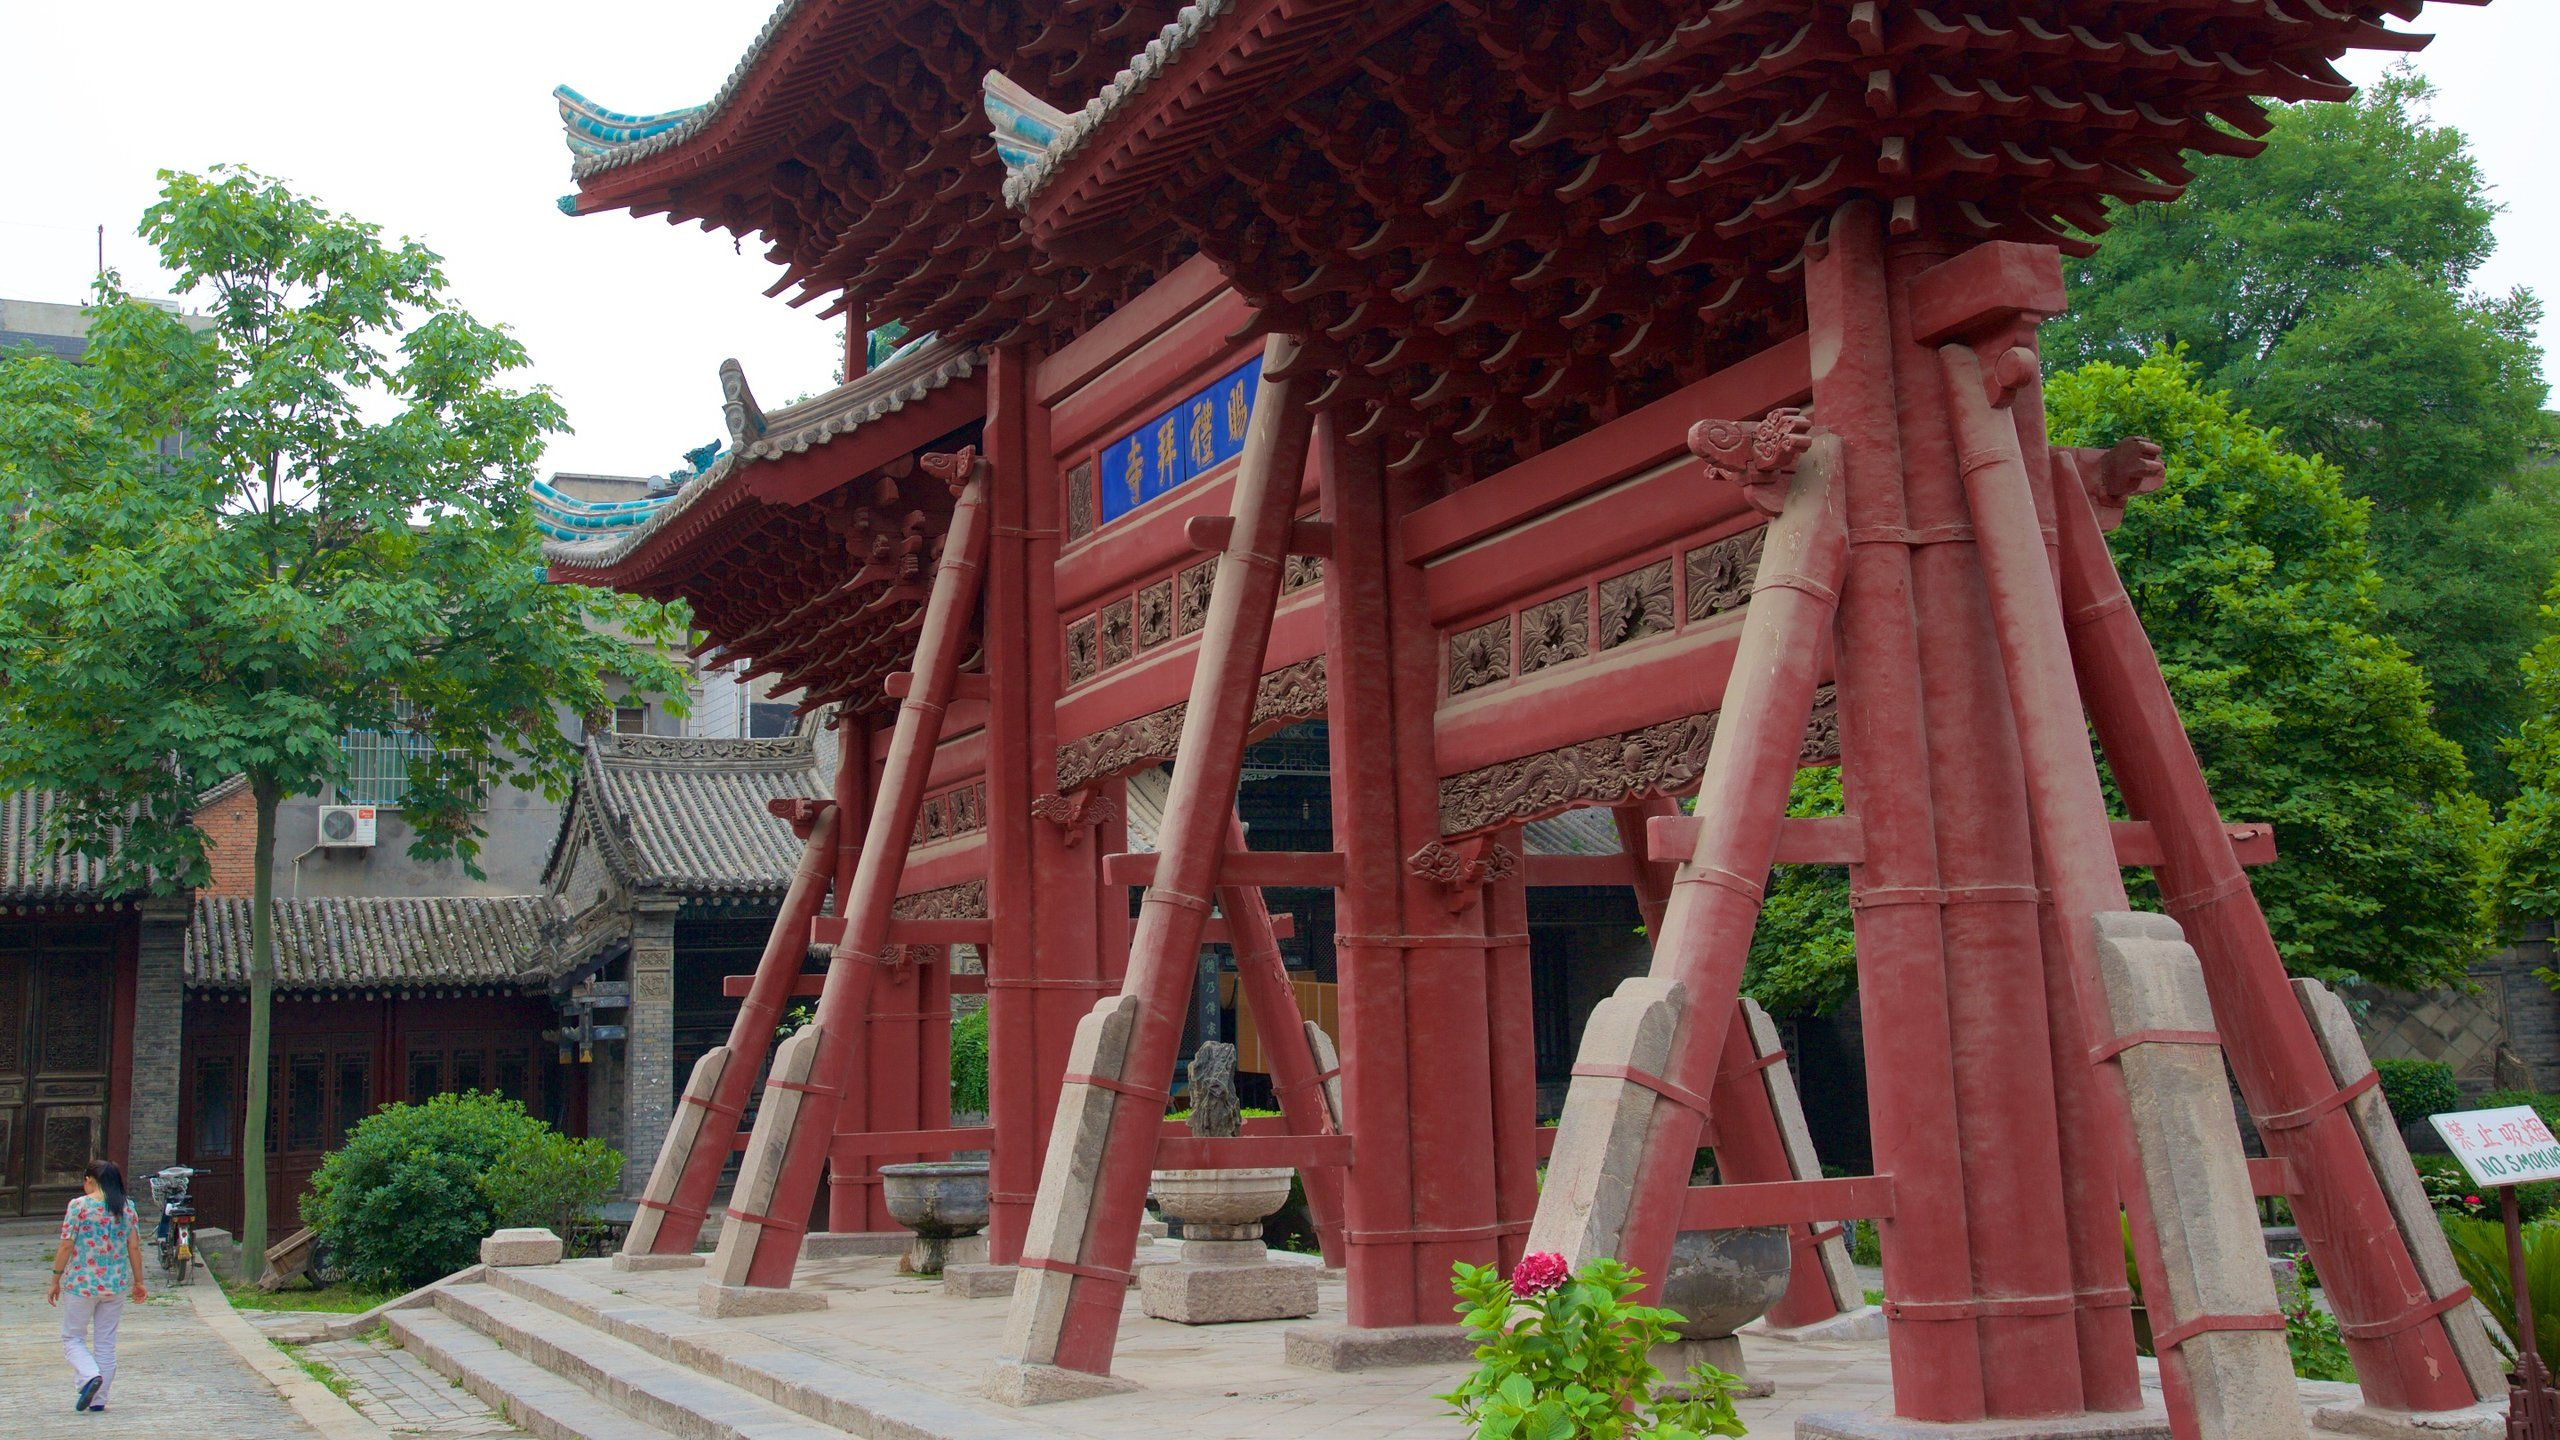 2560x1440 Top 10 Hotels with Room Service in Xi'an $21: Hotels with In ...